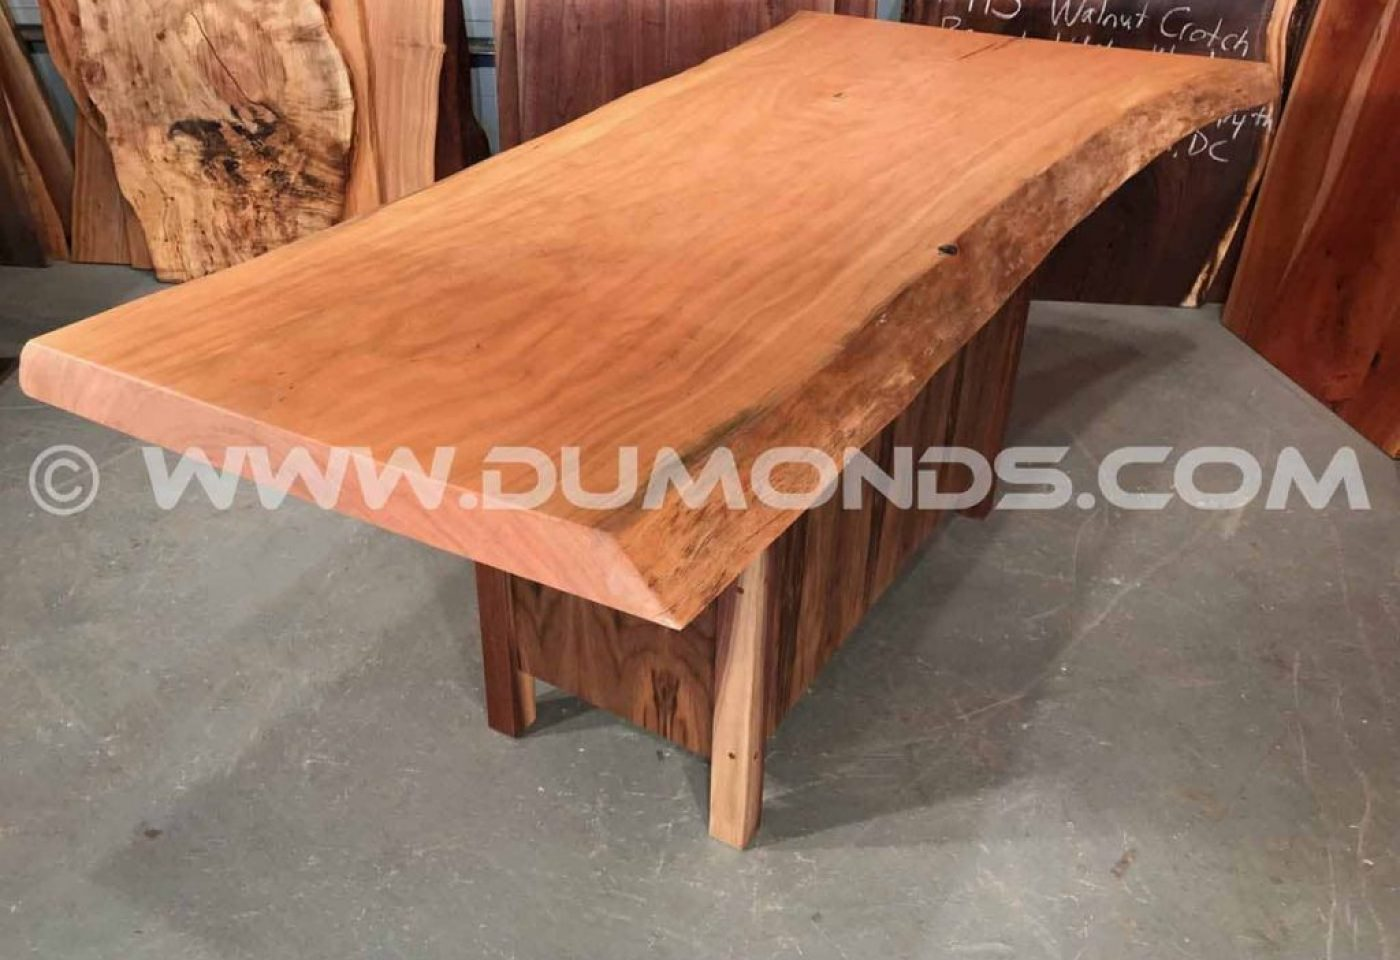 RECYCLED WASHINGTON, DC URBAN CHERRY SLAB TABLE WITH WALNUT BASE